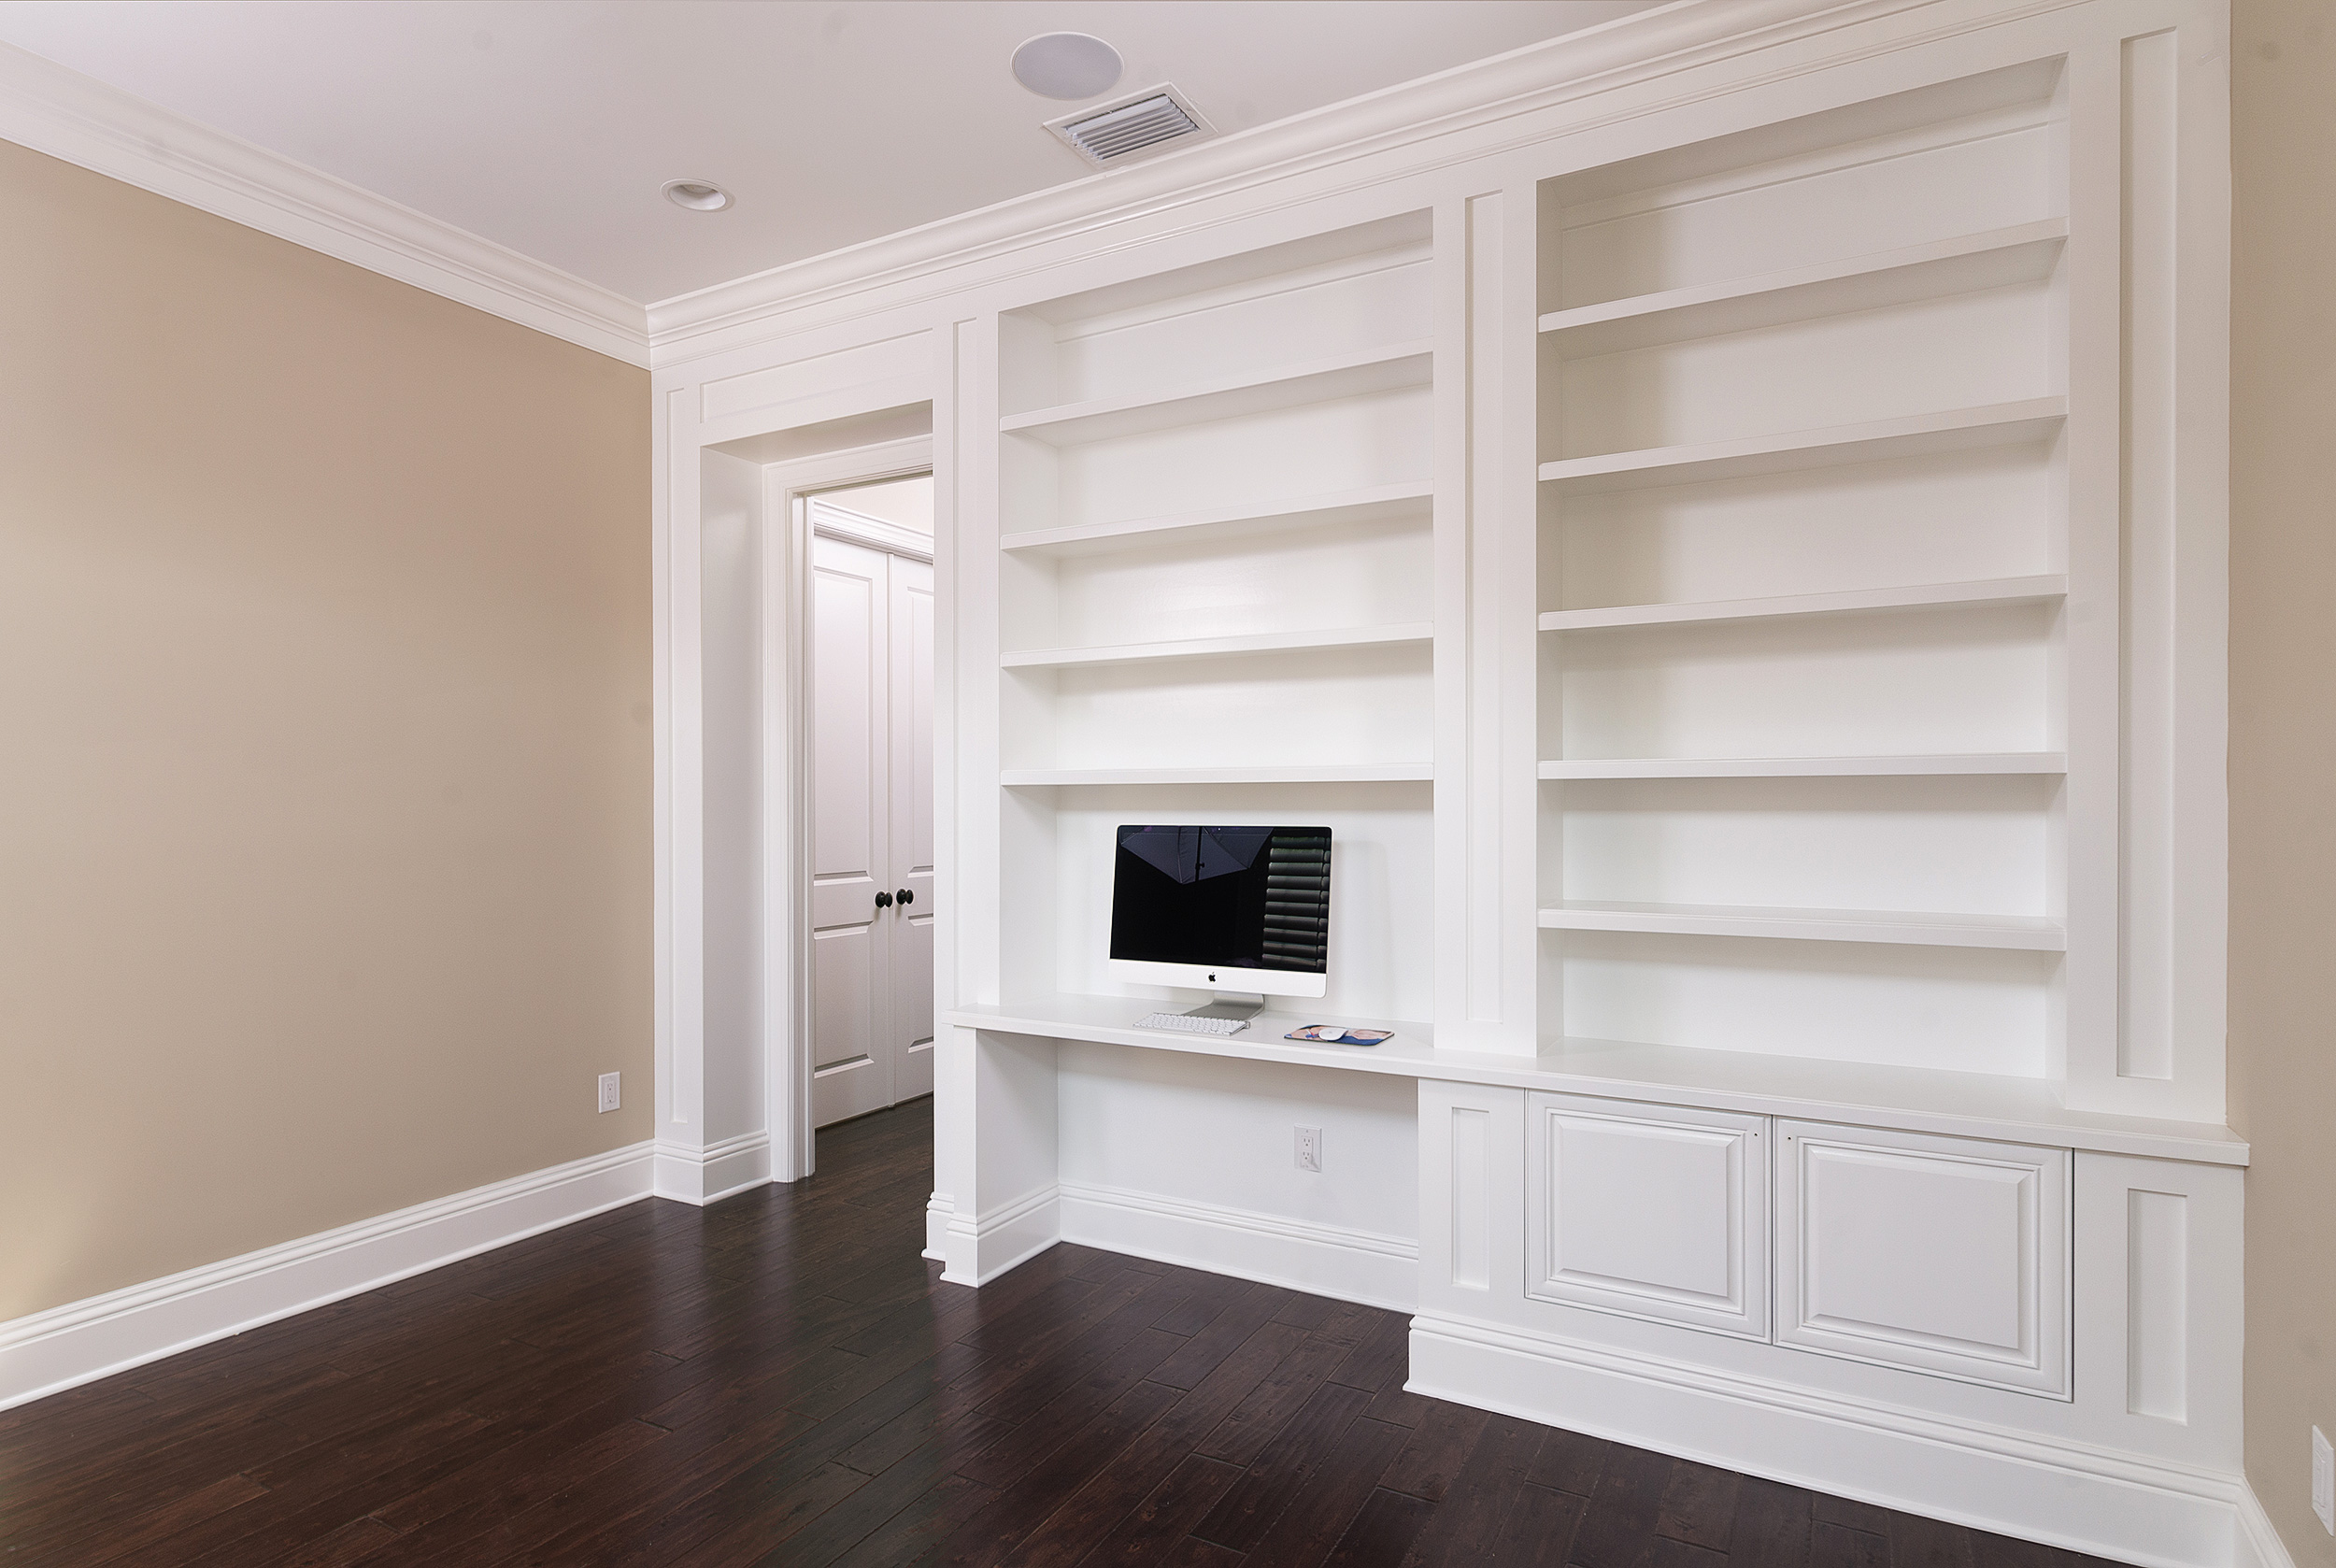 7 Types Of Crown Molding For Your Home Bayfair Custom Homes Luxury Custom Homes In Tampa Florida